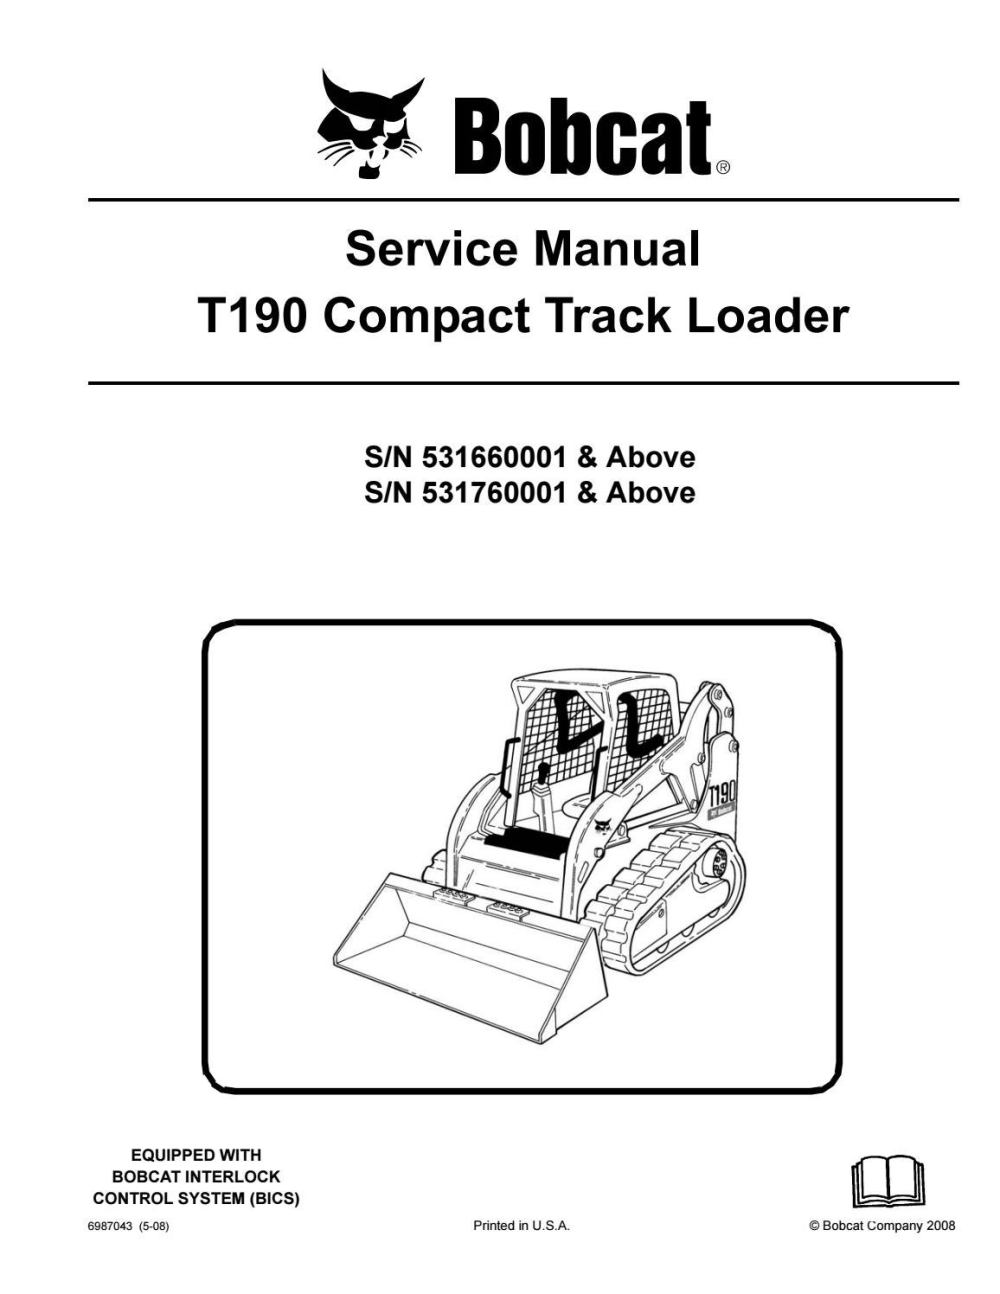 medium resolution of bobcat t190 compact track loader service repair manual snsn 531660001 above sn 531760001 above by ujhsenfnse issuu